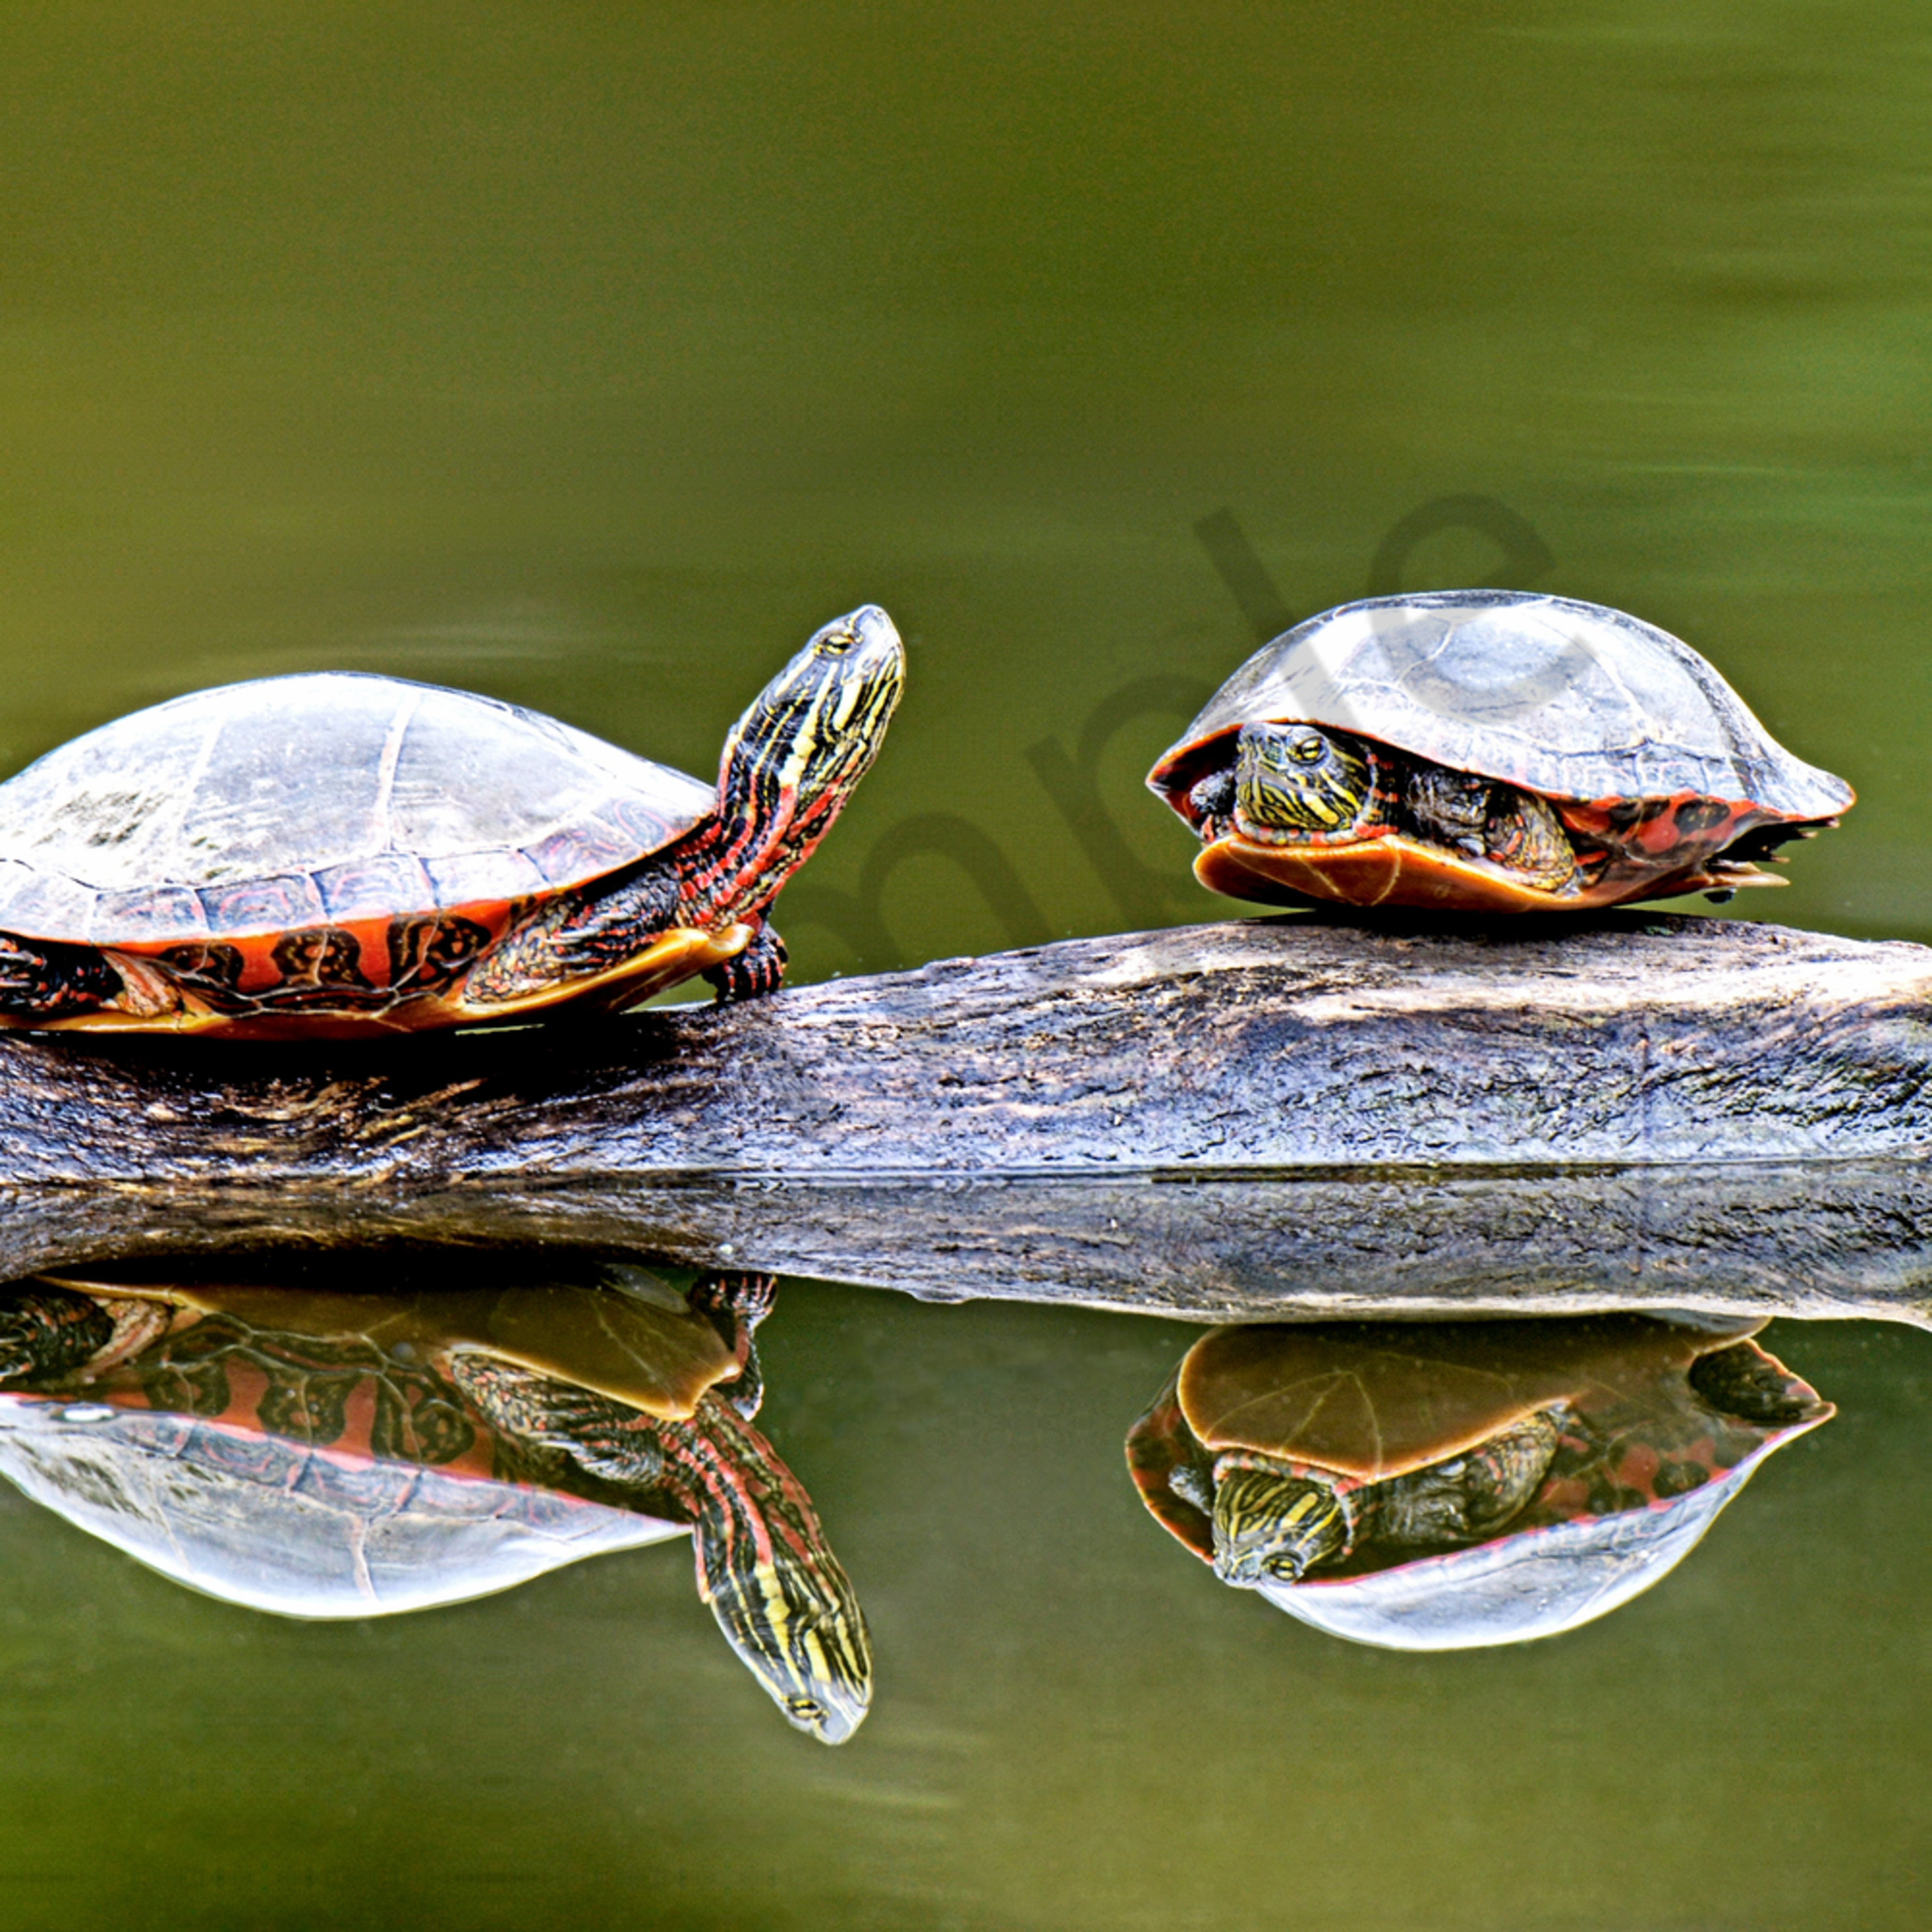 Two turtles 1 of 1 cvkgfo